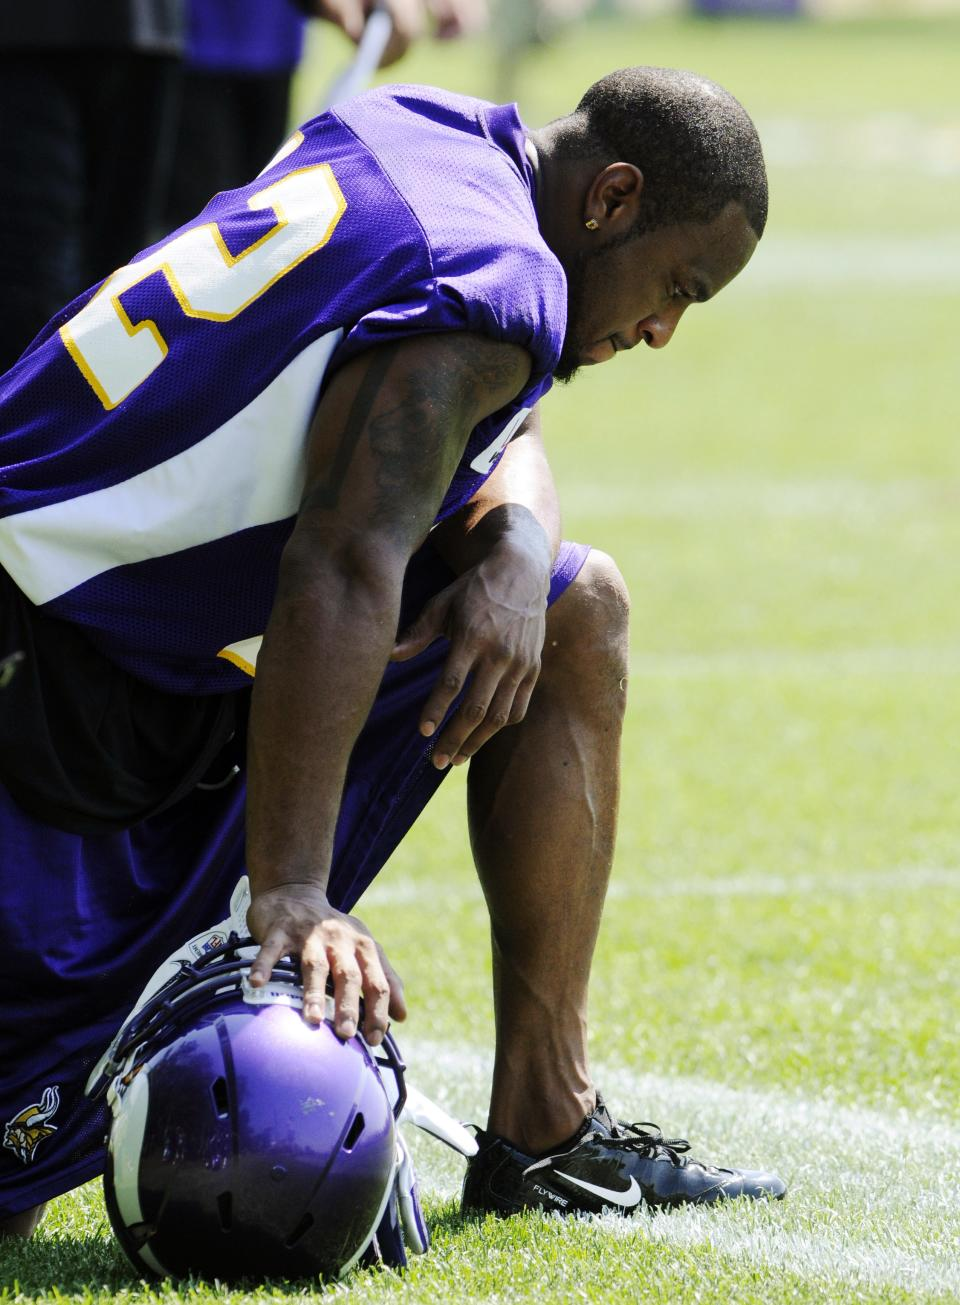 Minnesota Vikings wide receiver Percy Harvin kneels along the sidelines during the first day of NFL football minicamp, Tuesday, June 19, 2012, in Eden Prairie, Minn. Harvin earlier told reporters he is upset with the team but did not elaborate. (AP Photo/Jim Mone)